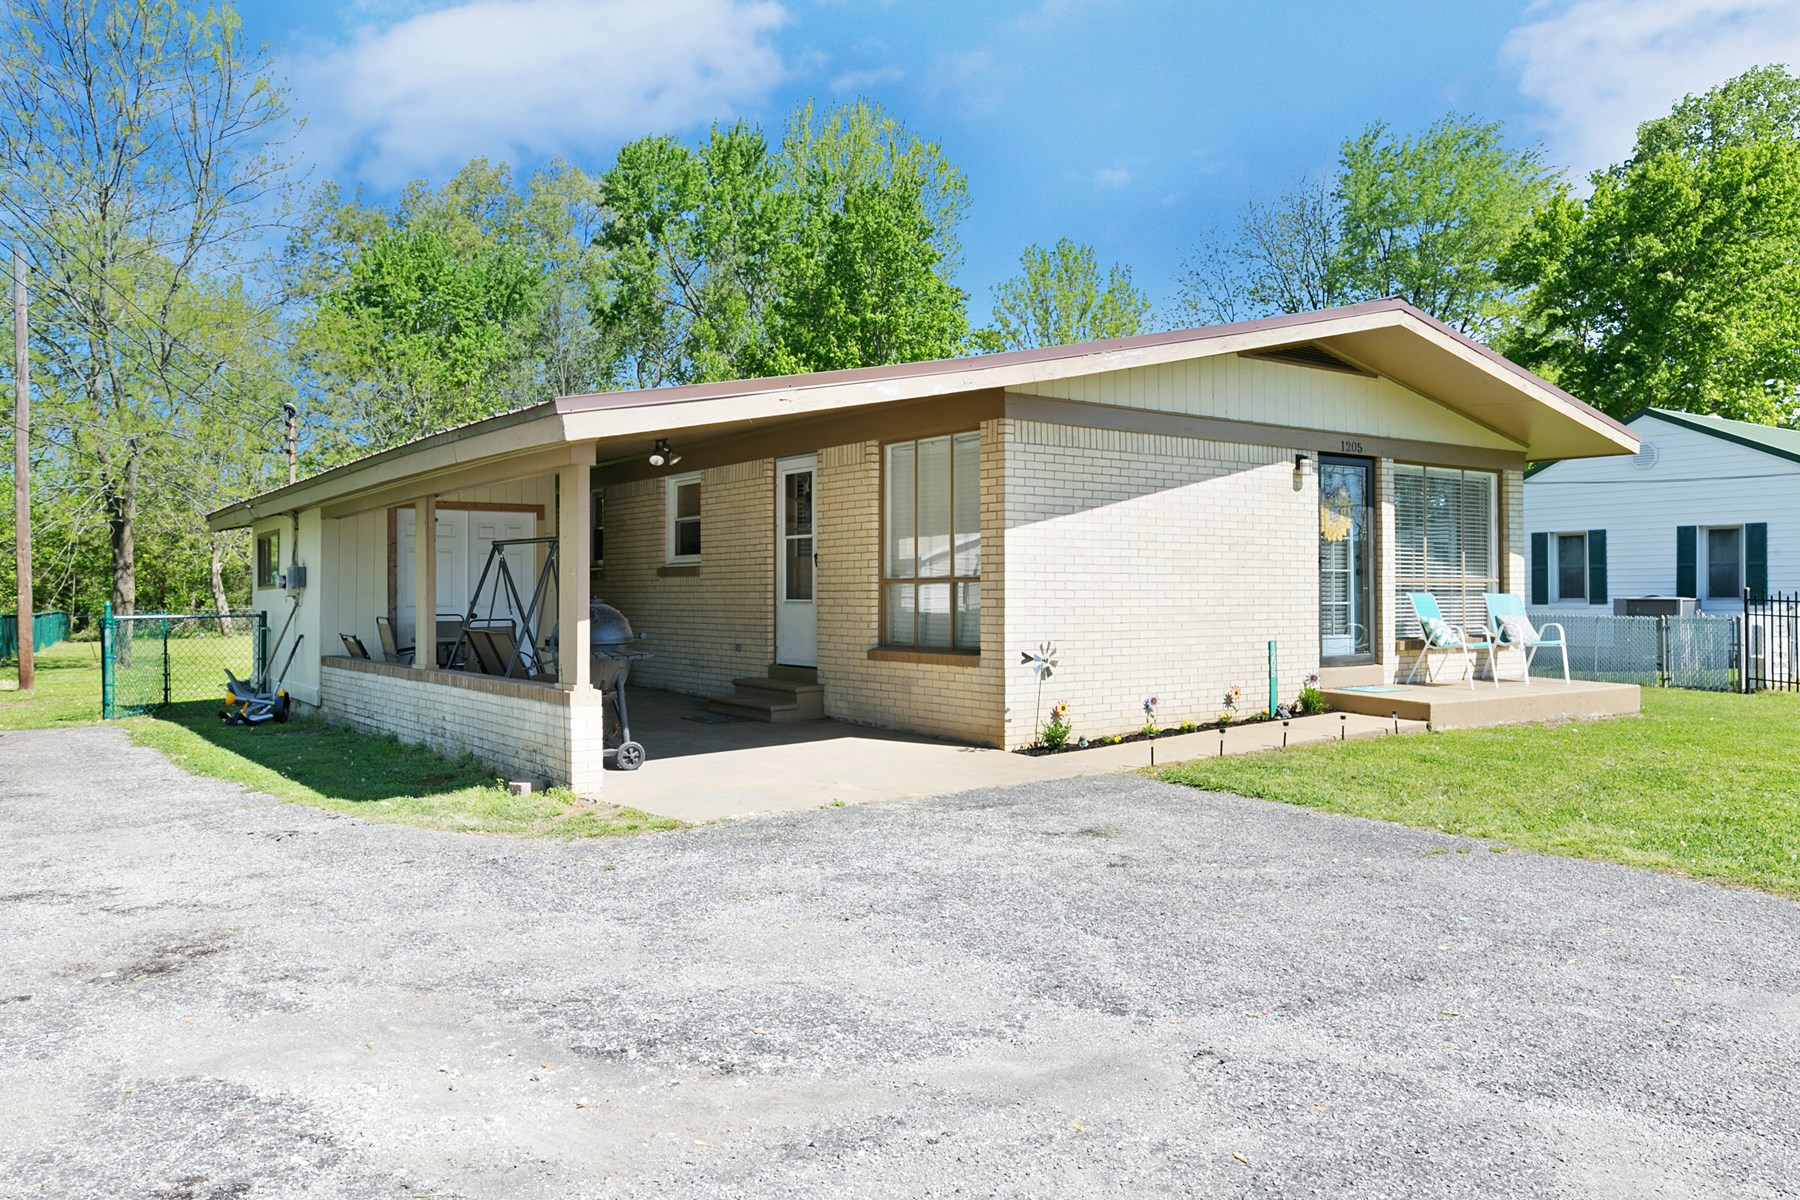 3BR Home For Sale / Hardwood Floors / Stainless Appliances